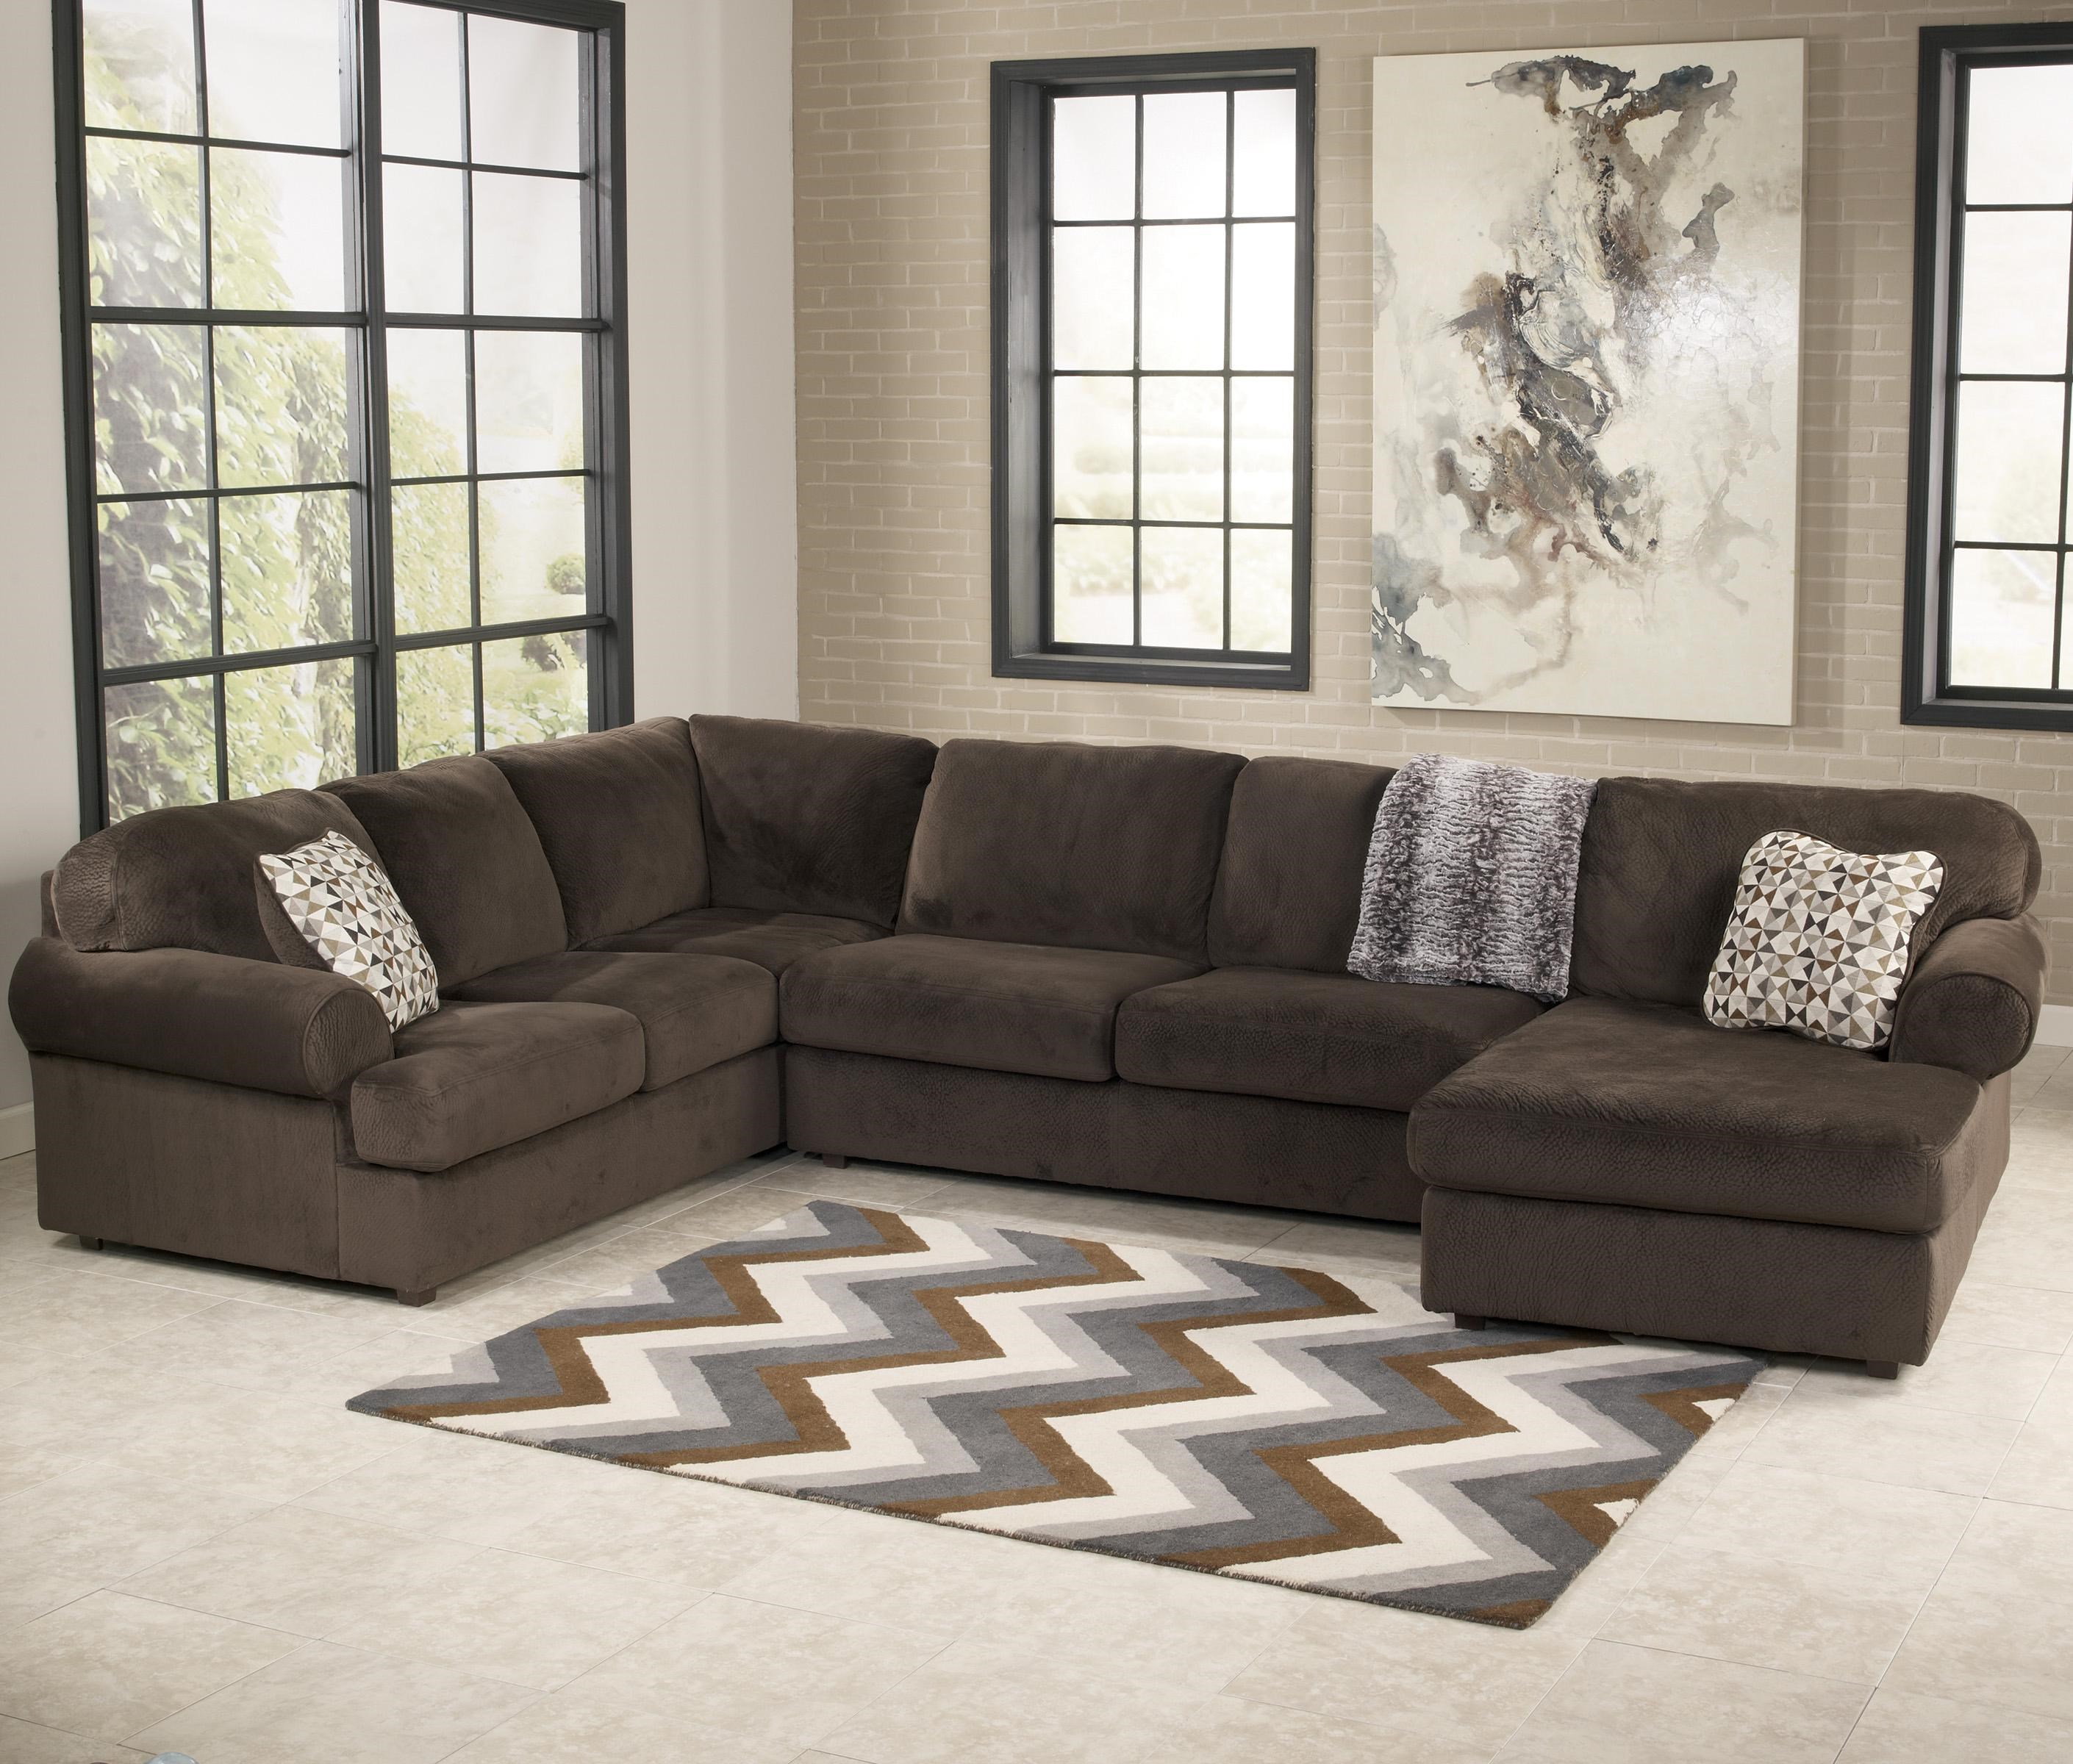 Couch Sectional Pit Sectional Sleeper Sofa 14 Wonderful Pit